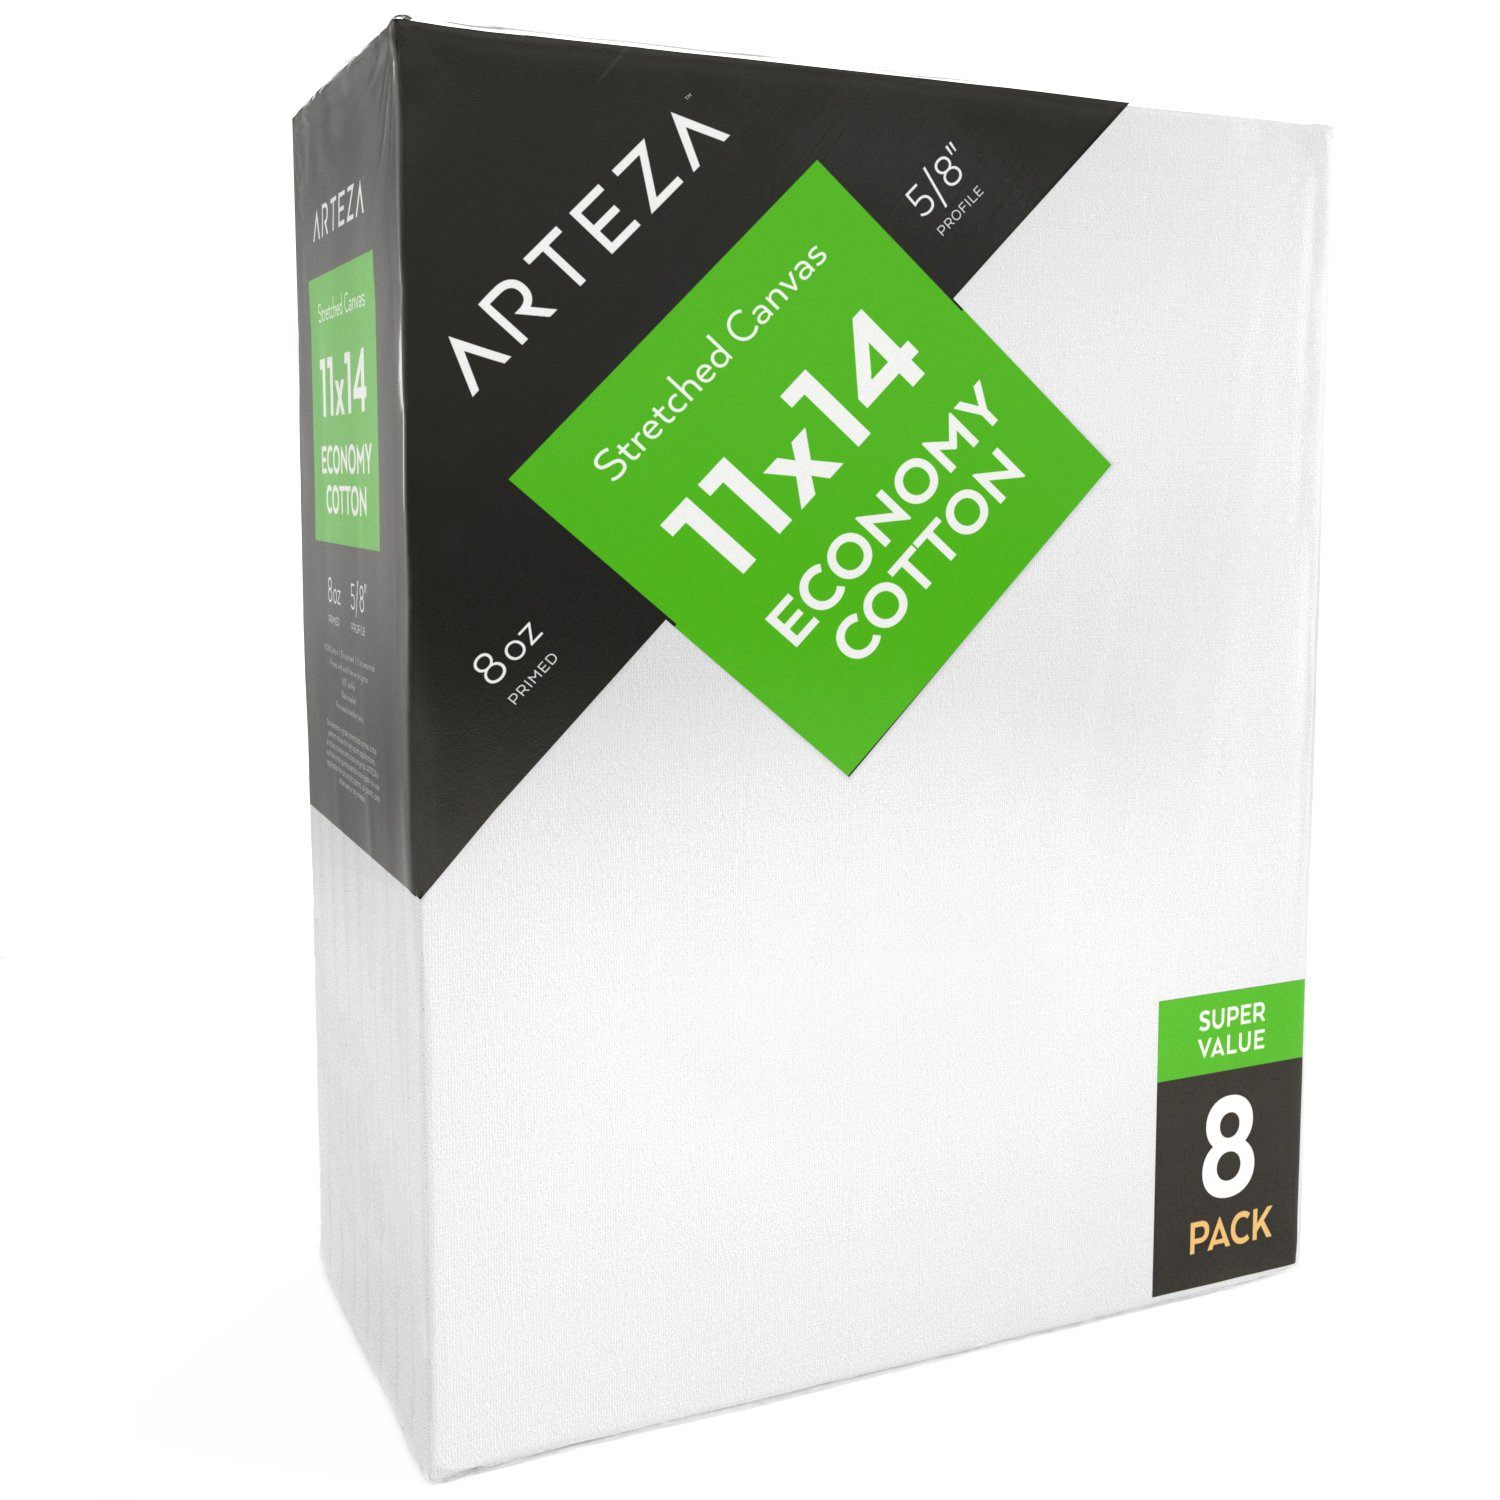 Arteza 11x14'' Stretched White Blank Canvas, Bulk Pack of 8, Primed, 100% Cotton for Painting, Acrylic Pouring, Oil Paint & Wet Art Media (Classic - 8 Pack) by ARTEZA